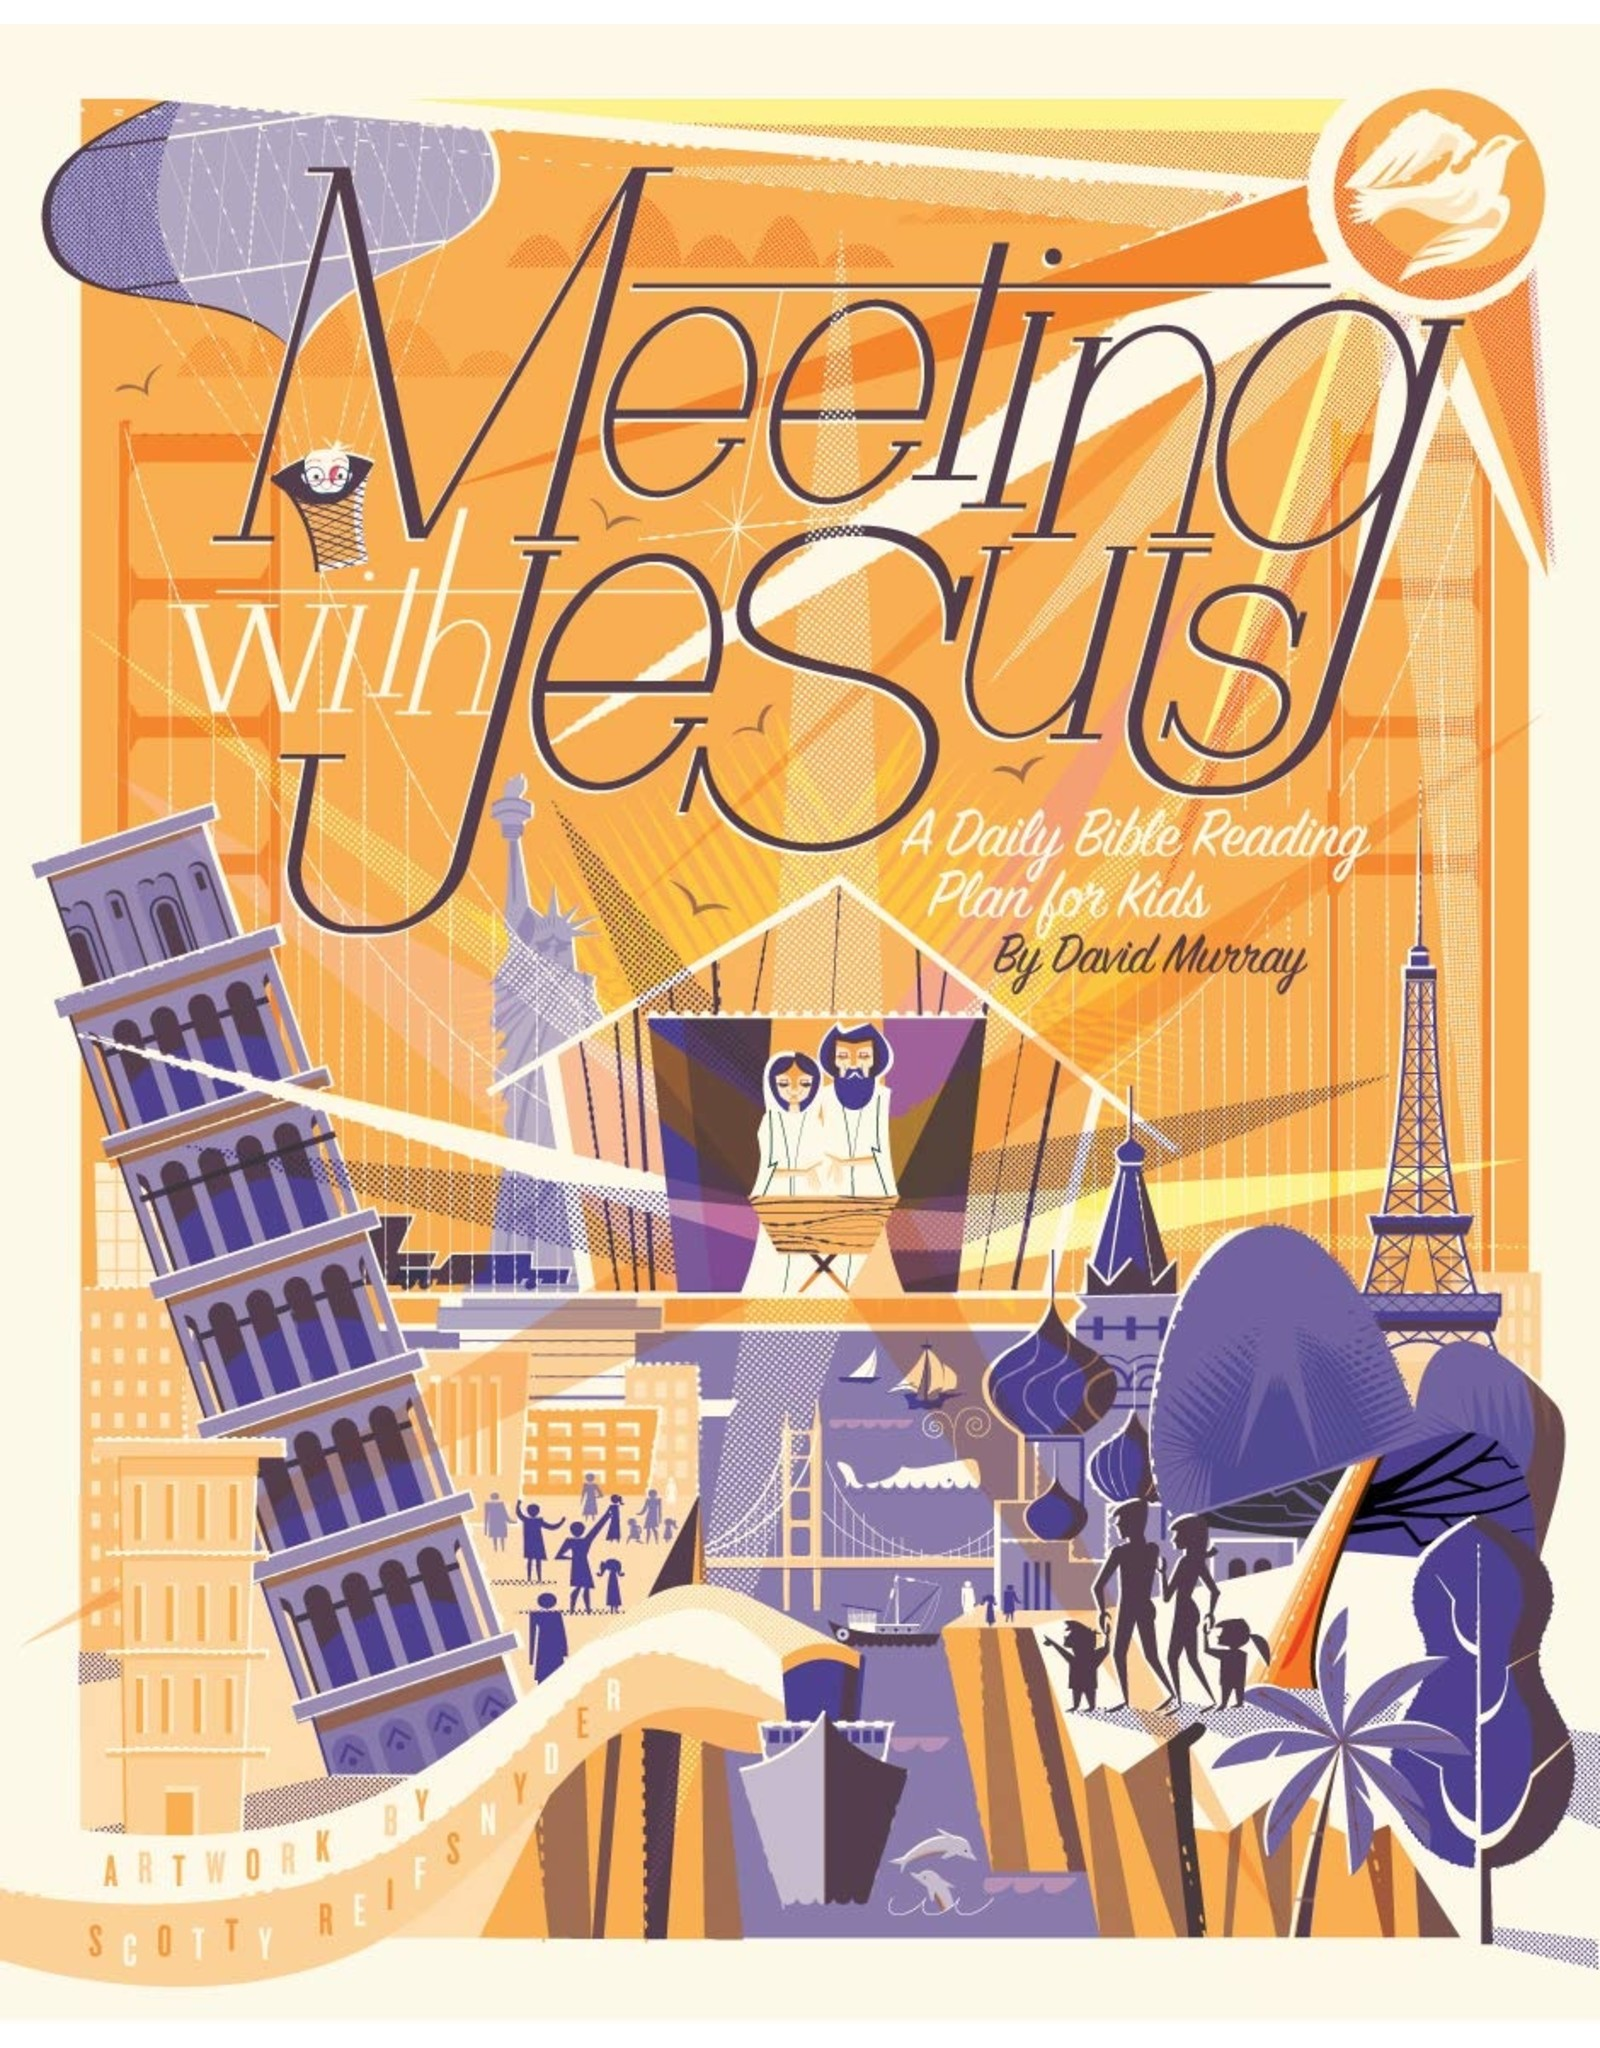 Crossway / Good News Meeting with Jesus: A Daily Bible Reading Plan for Kids